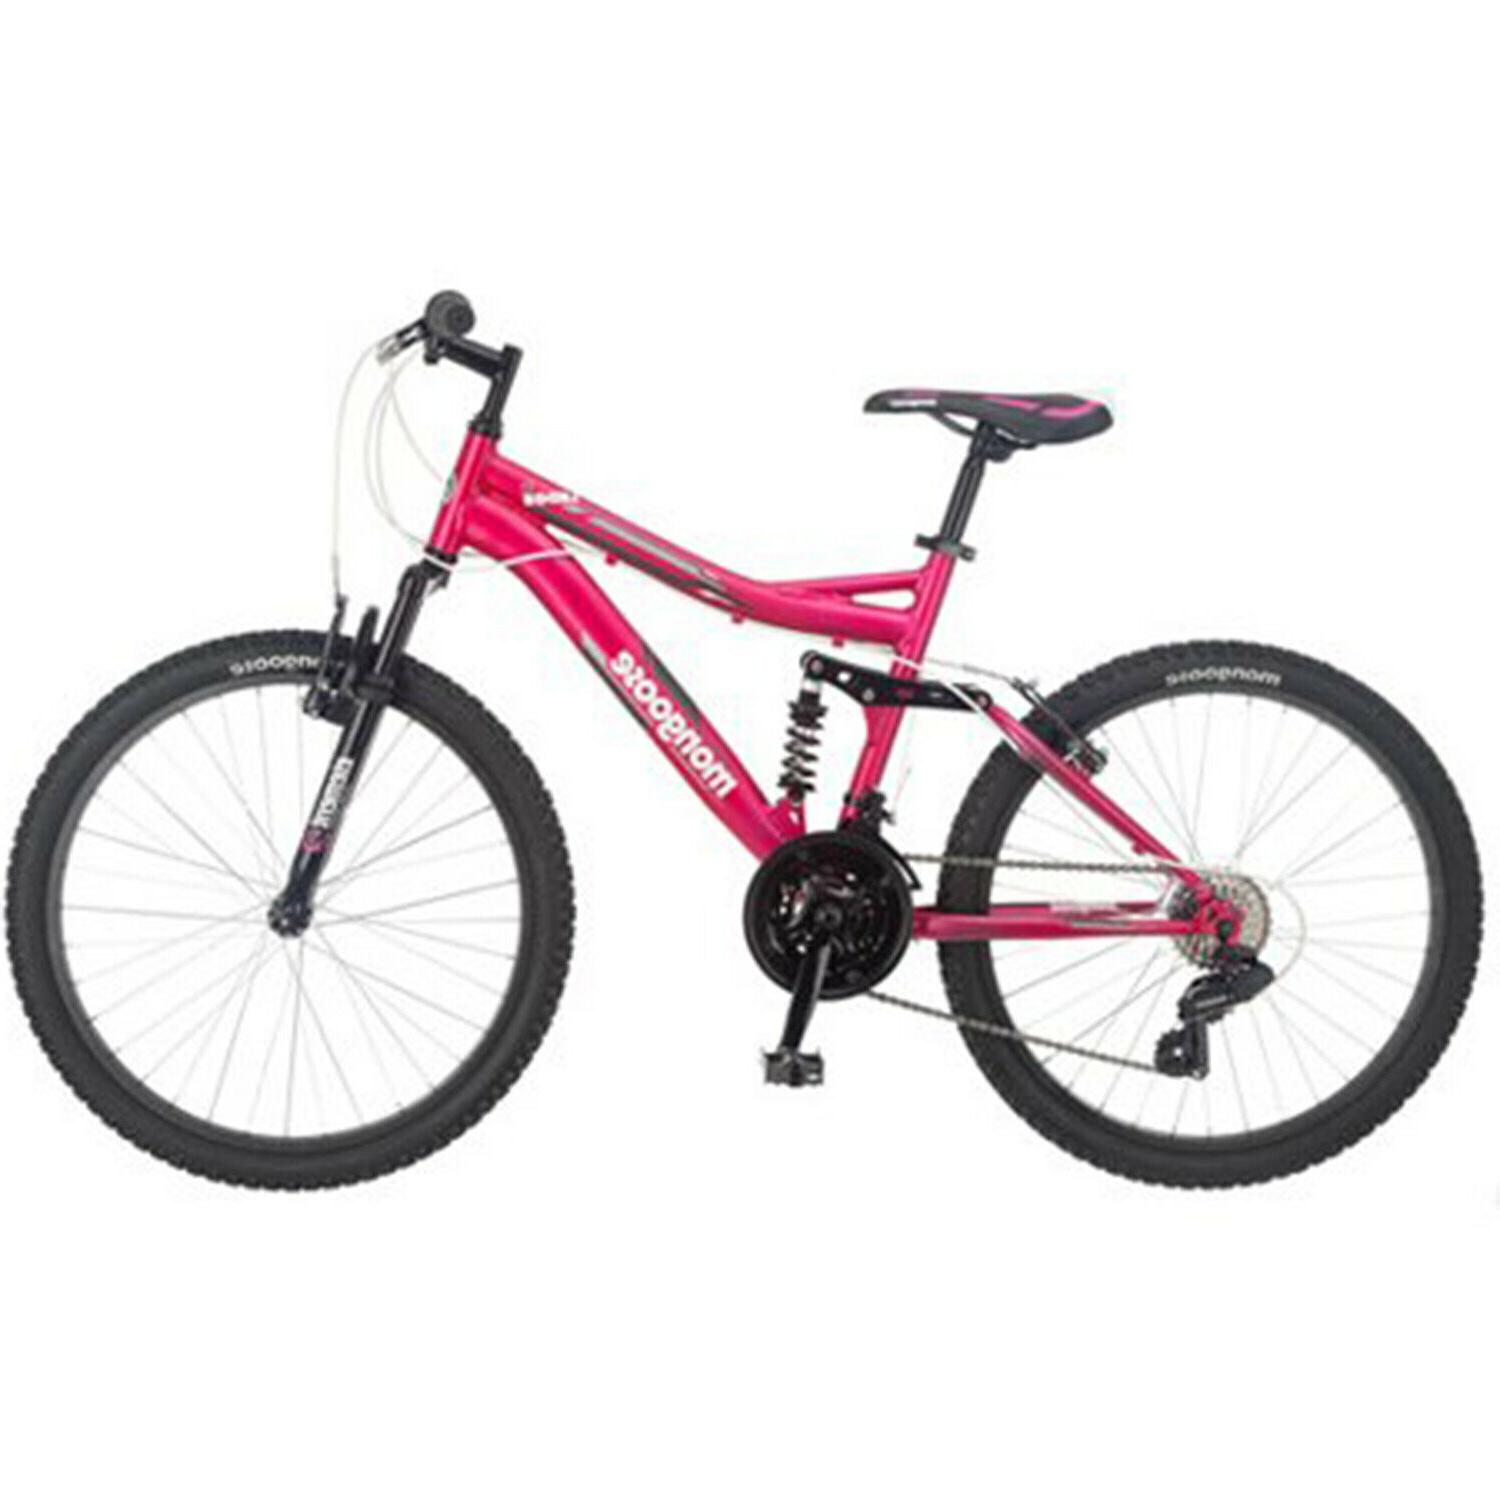 "24"" Inch Bike Bicycle 21 Aluminum Suspension"